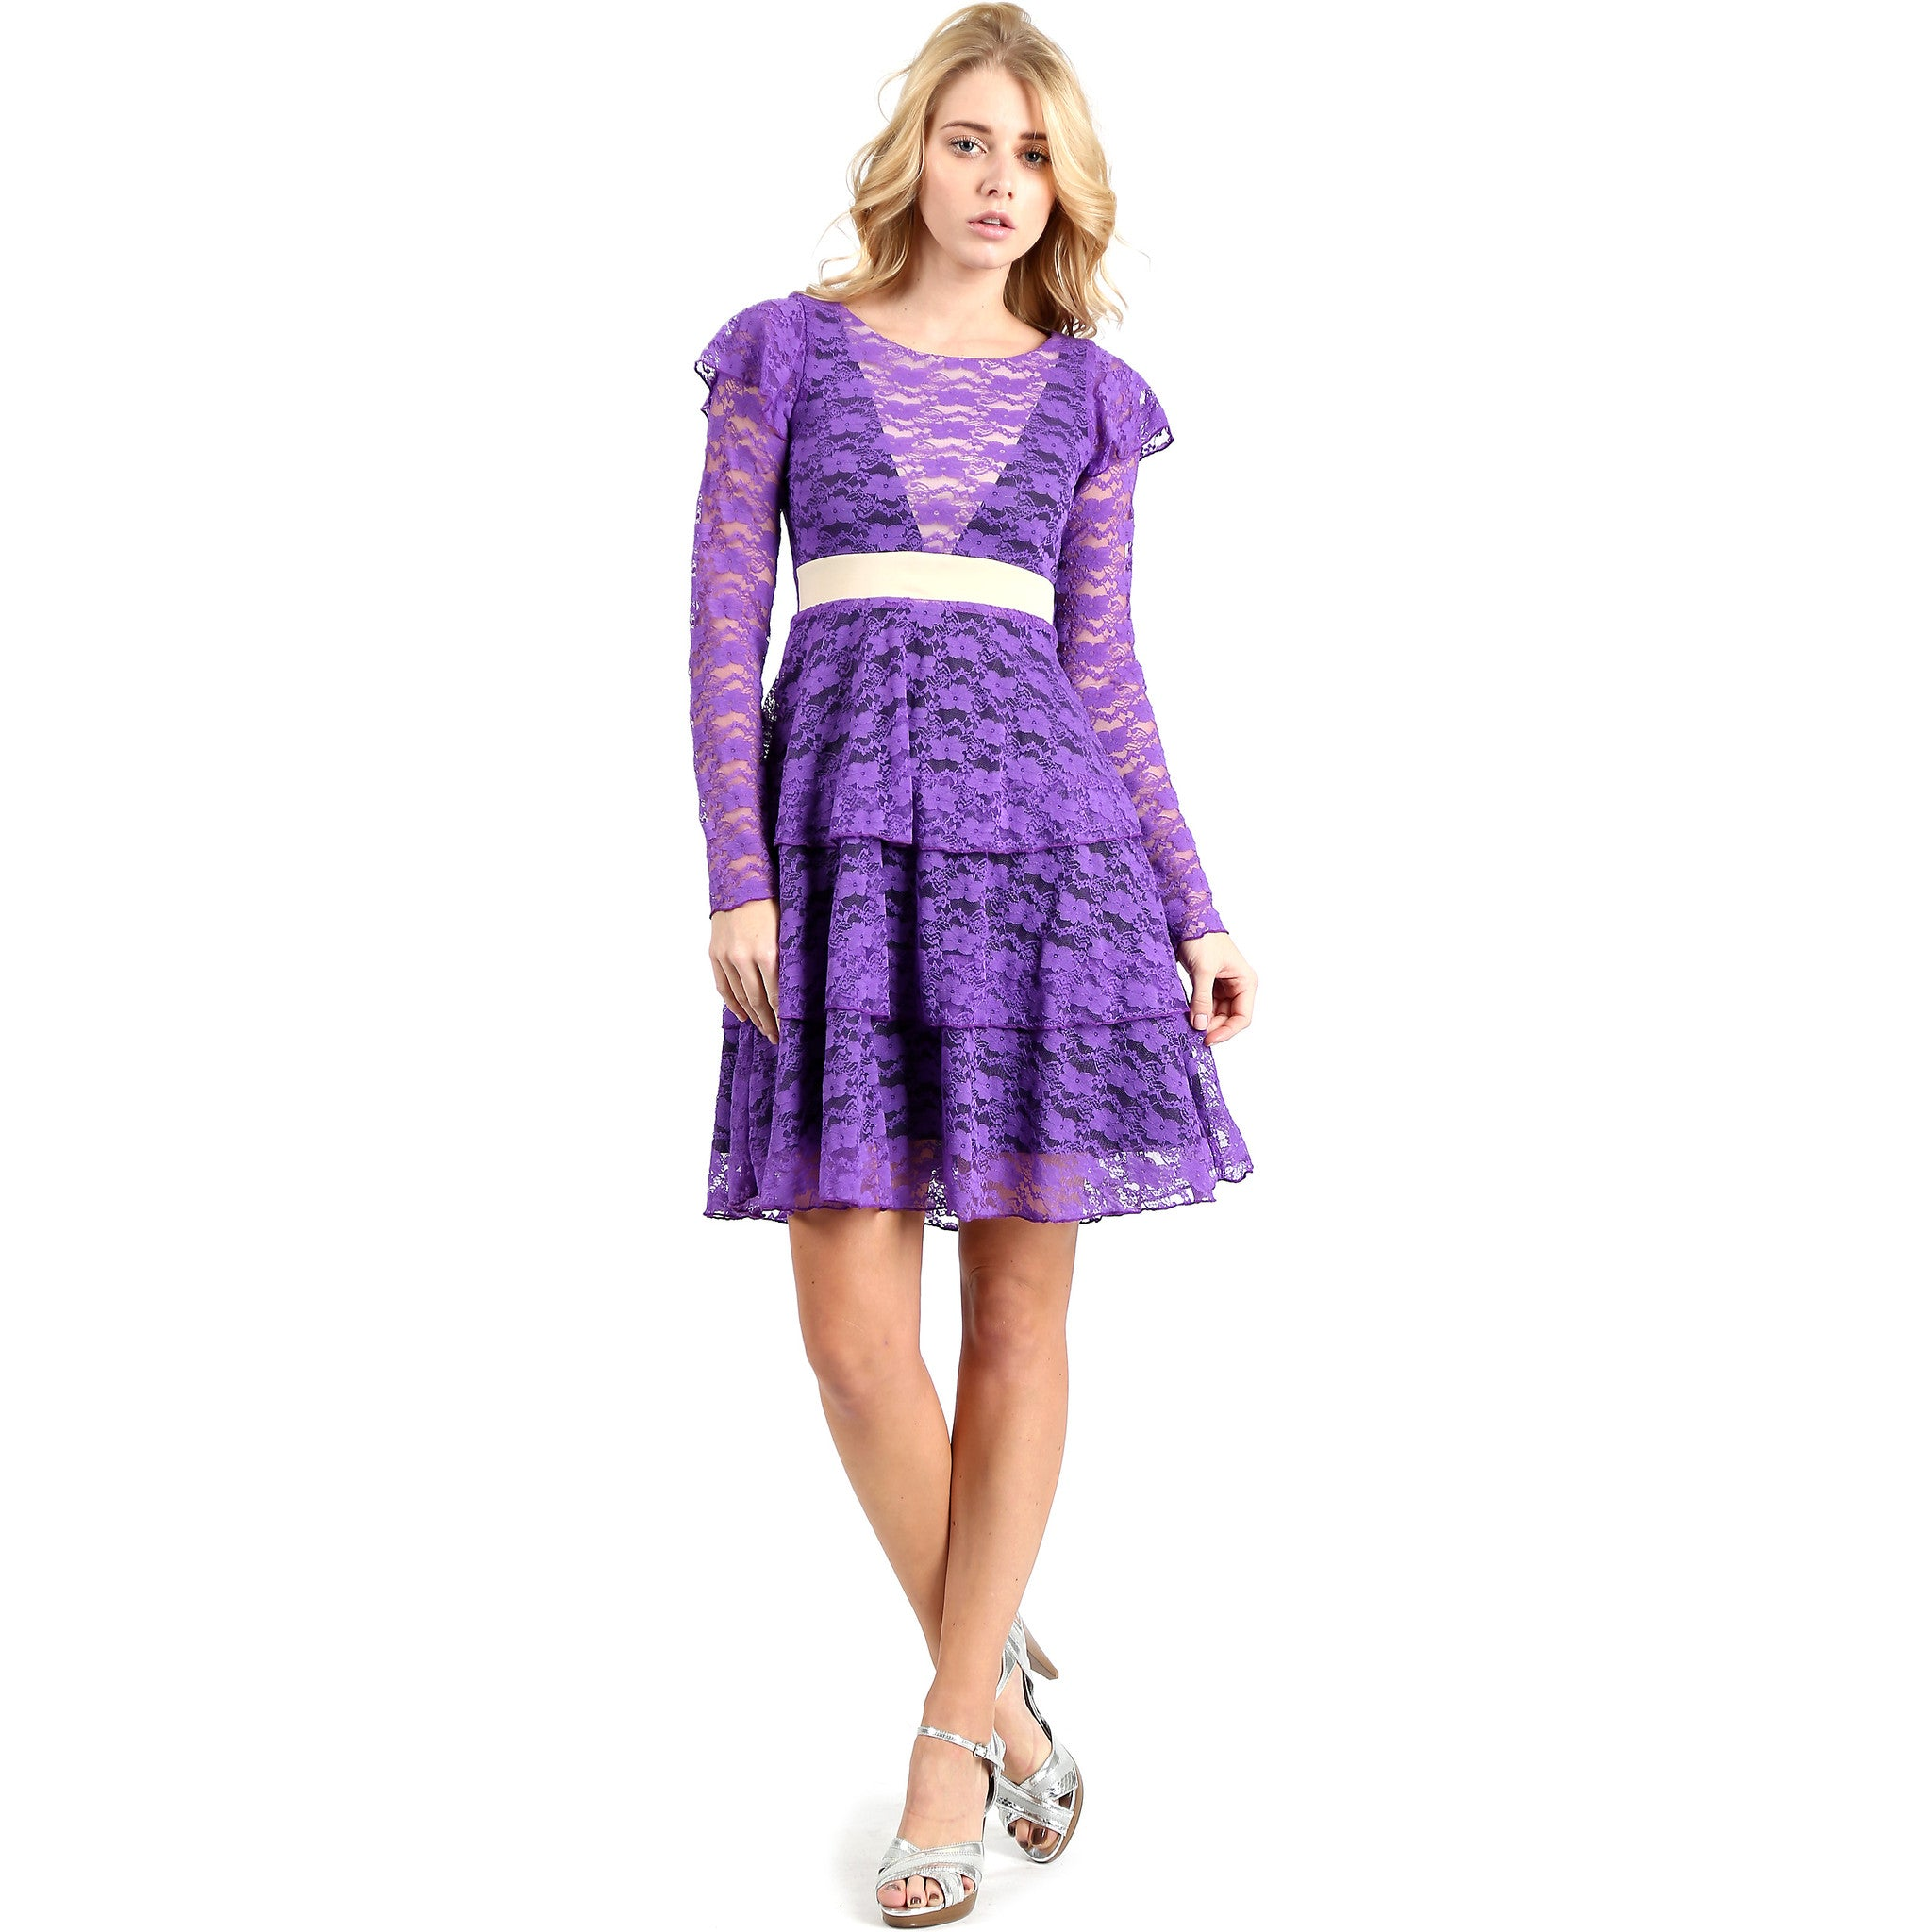 Evanese Women\'s Elegant Lace Cocktail Tiered Short Skirt Dress with ...